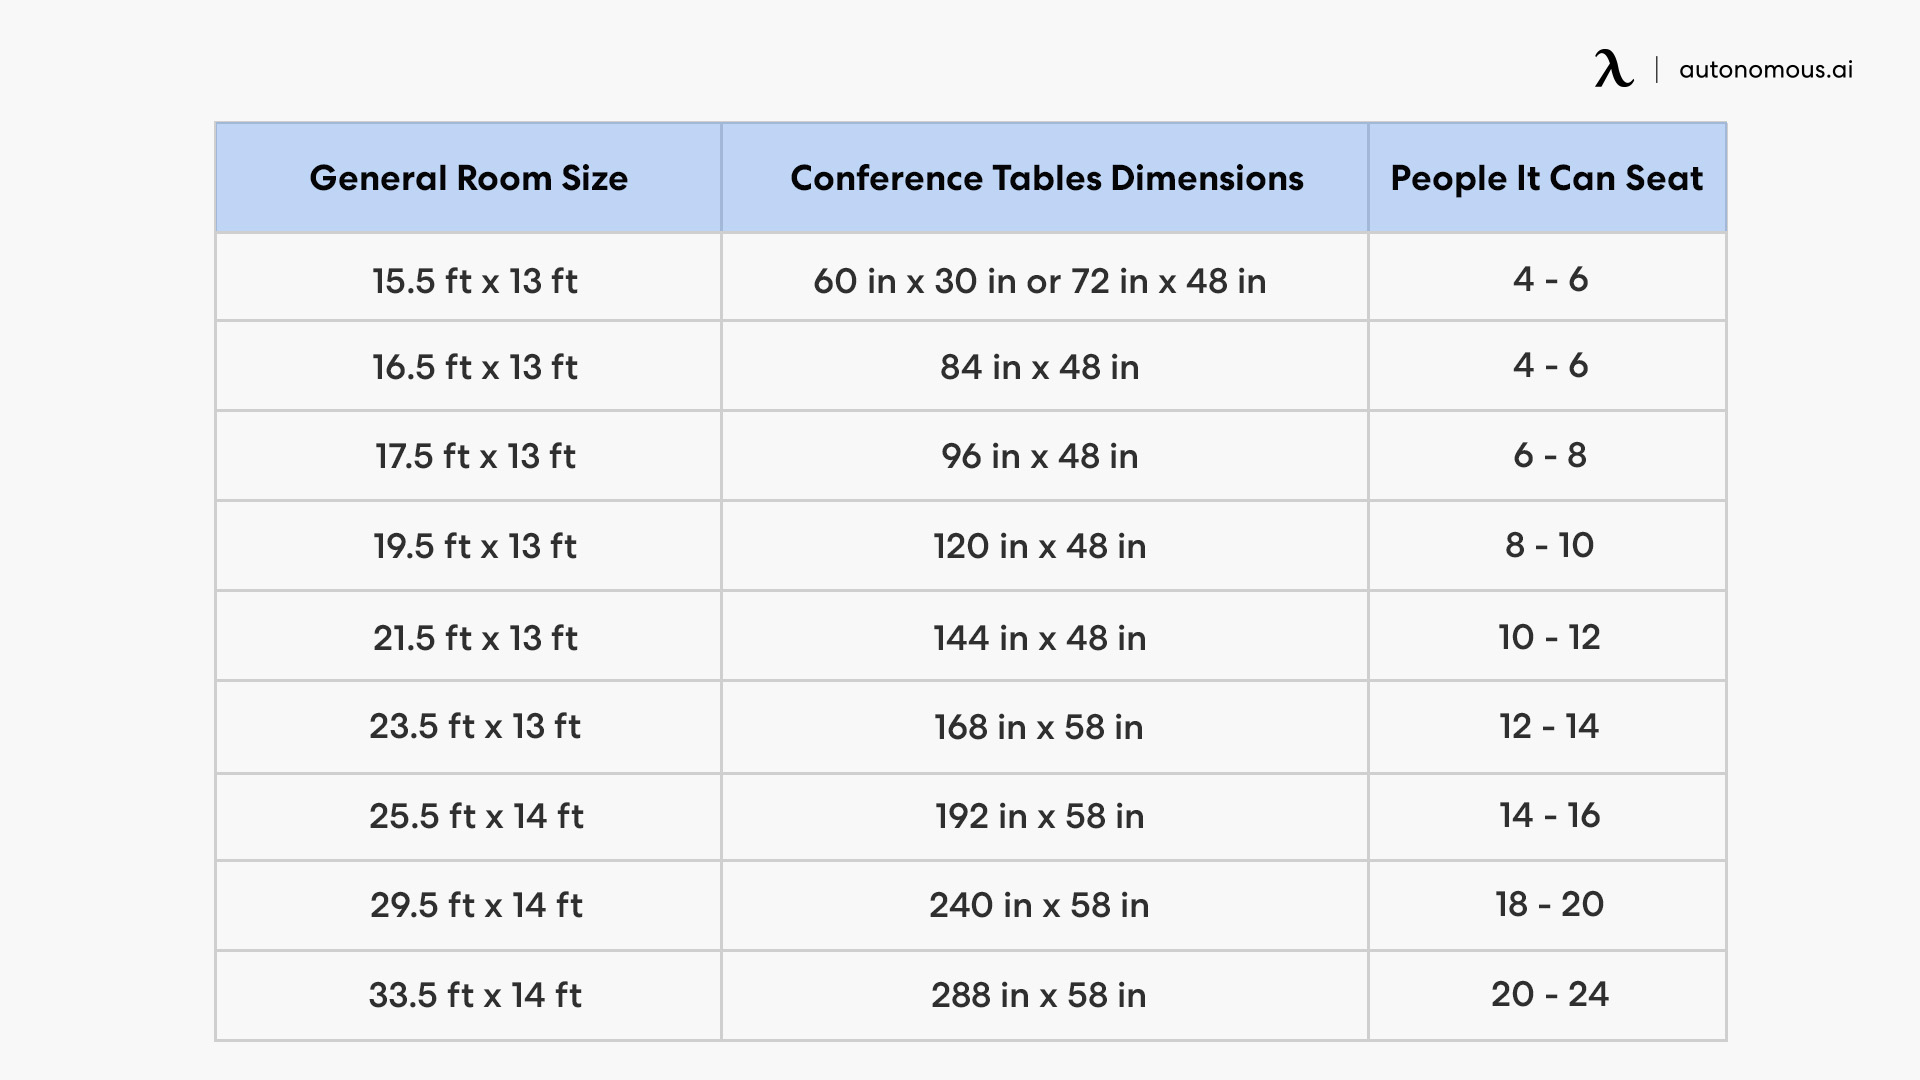 conference tables dimensions